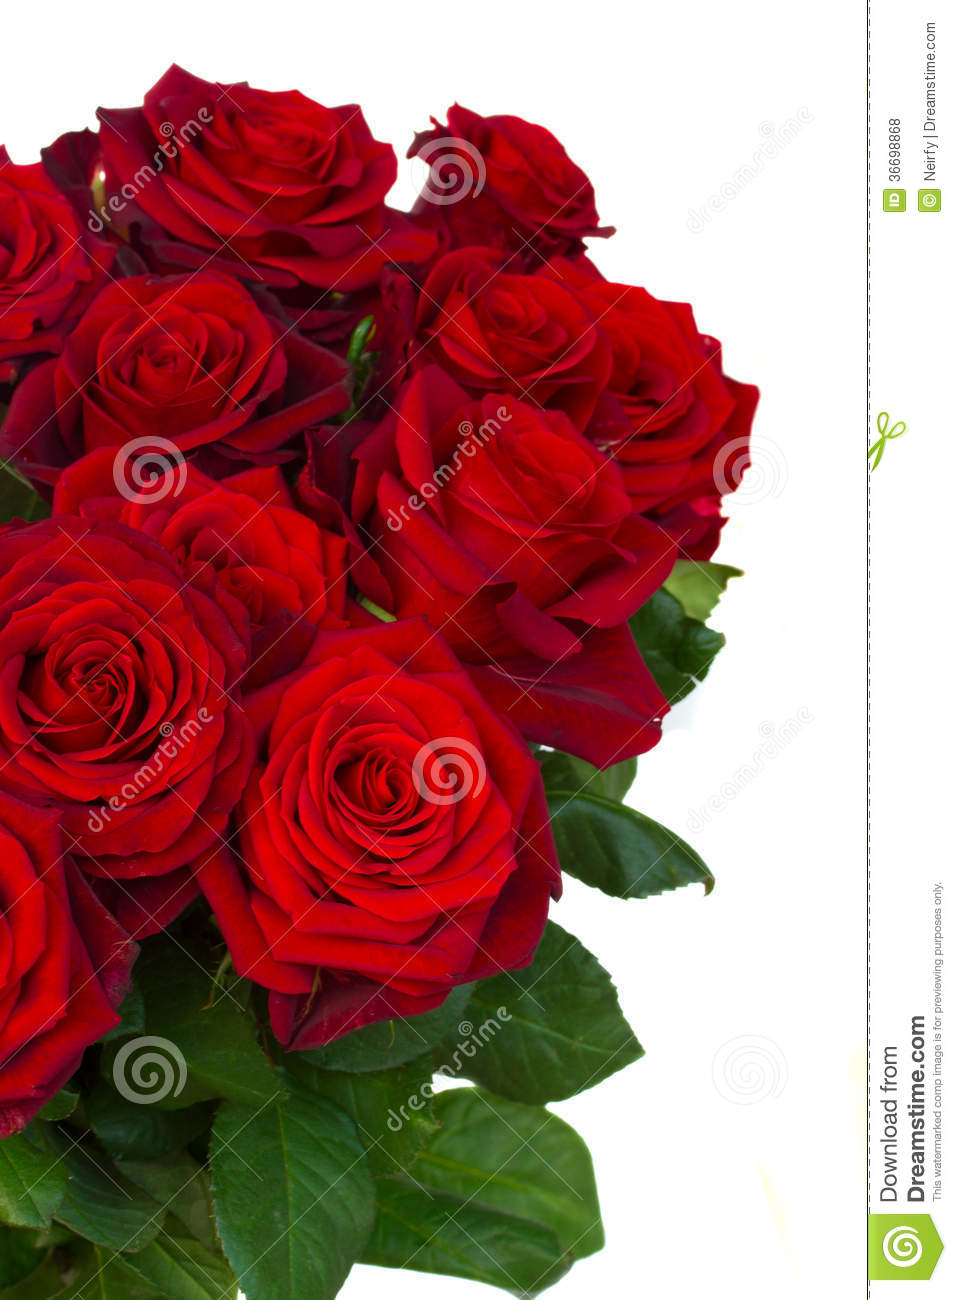 Bouquet Of Dark Red Roses In Vase Close Up Royalty Free ...